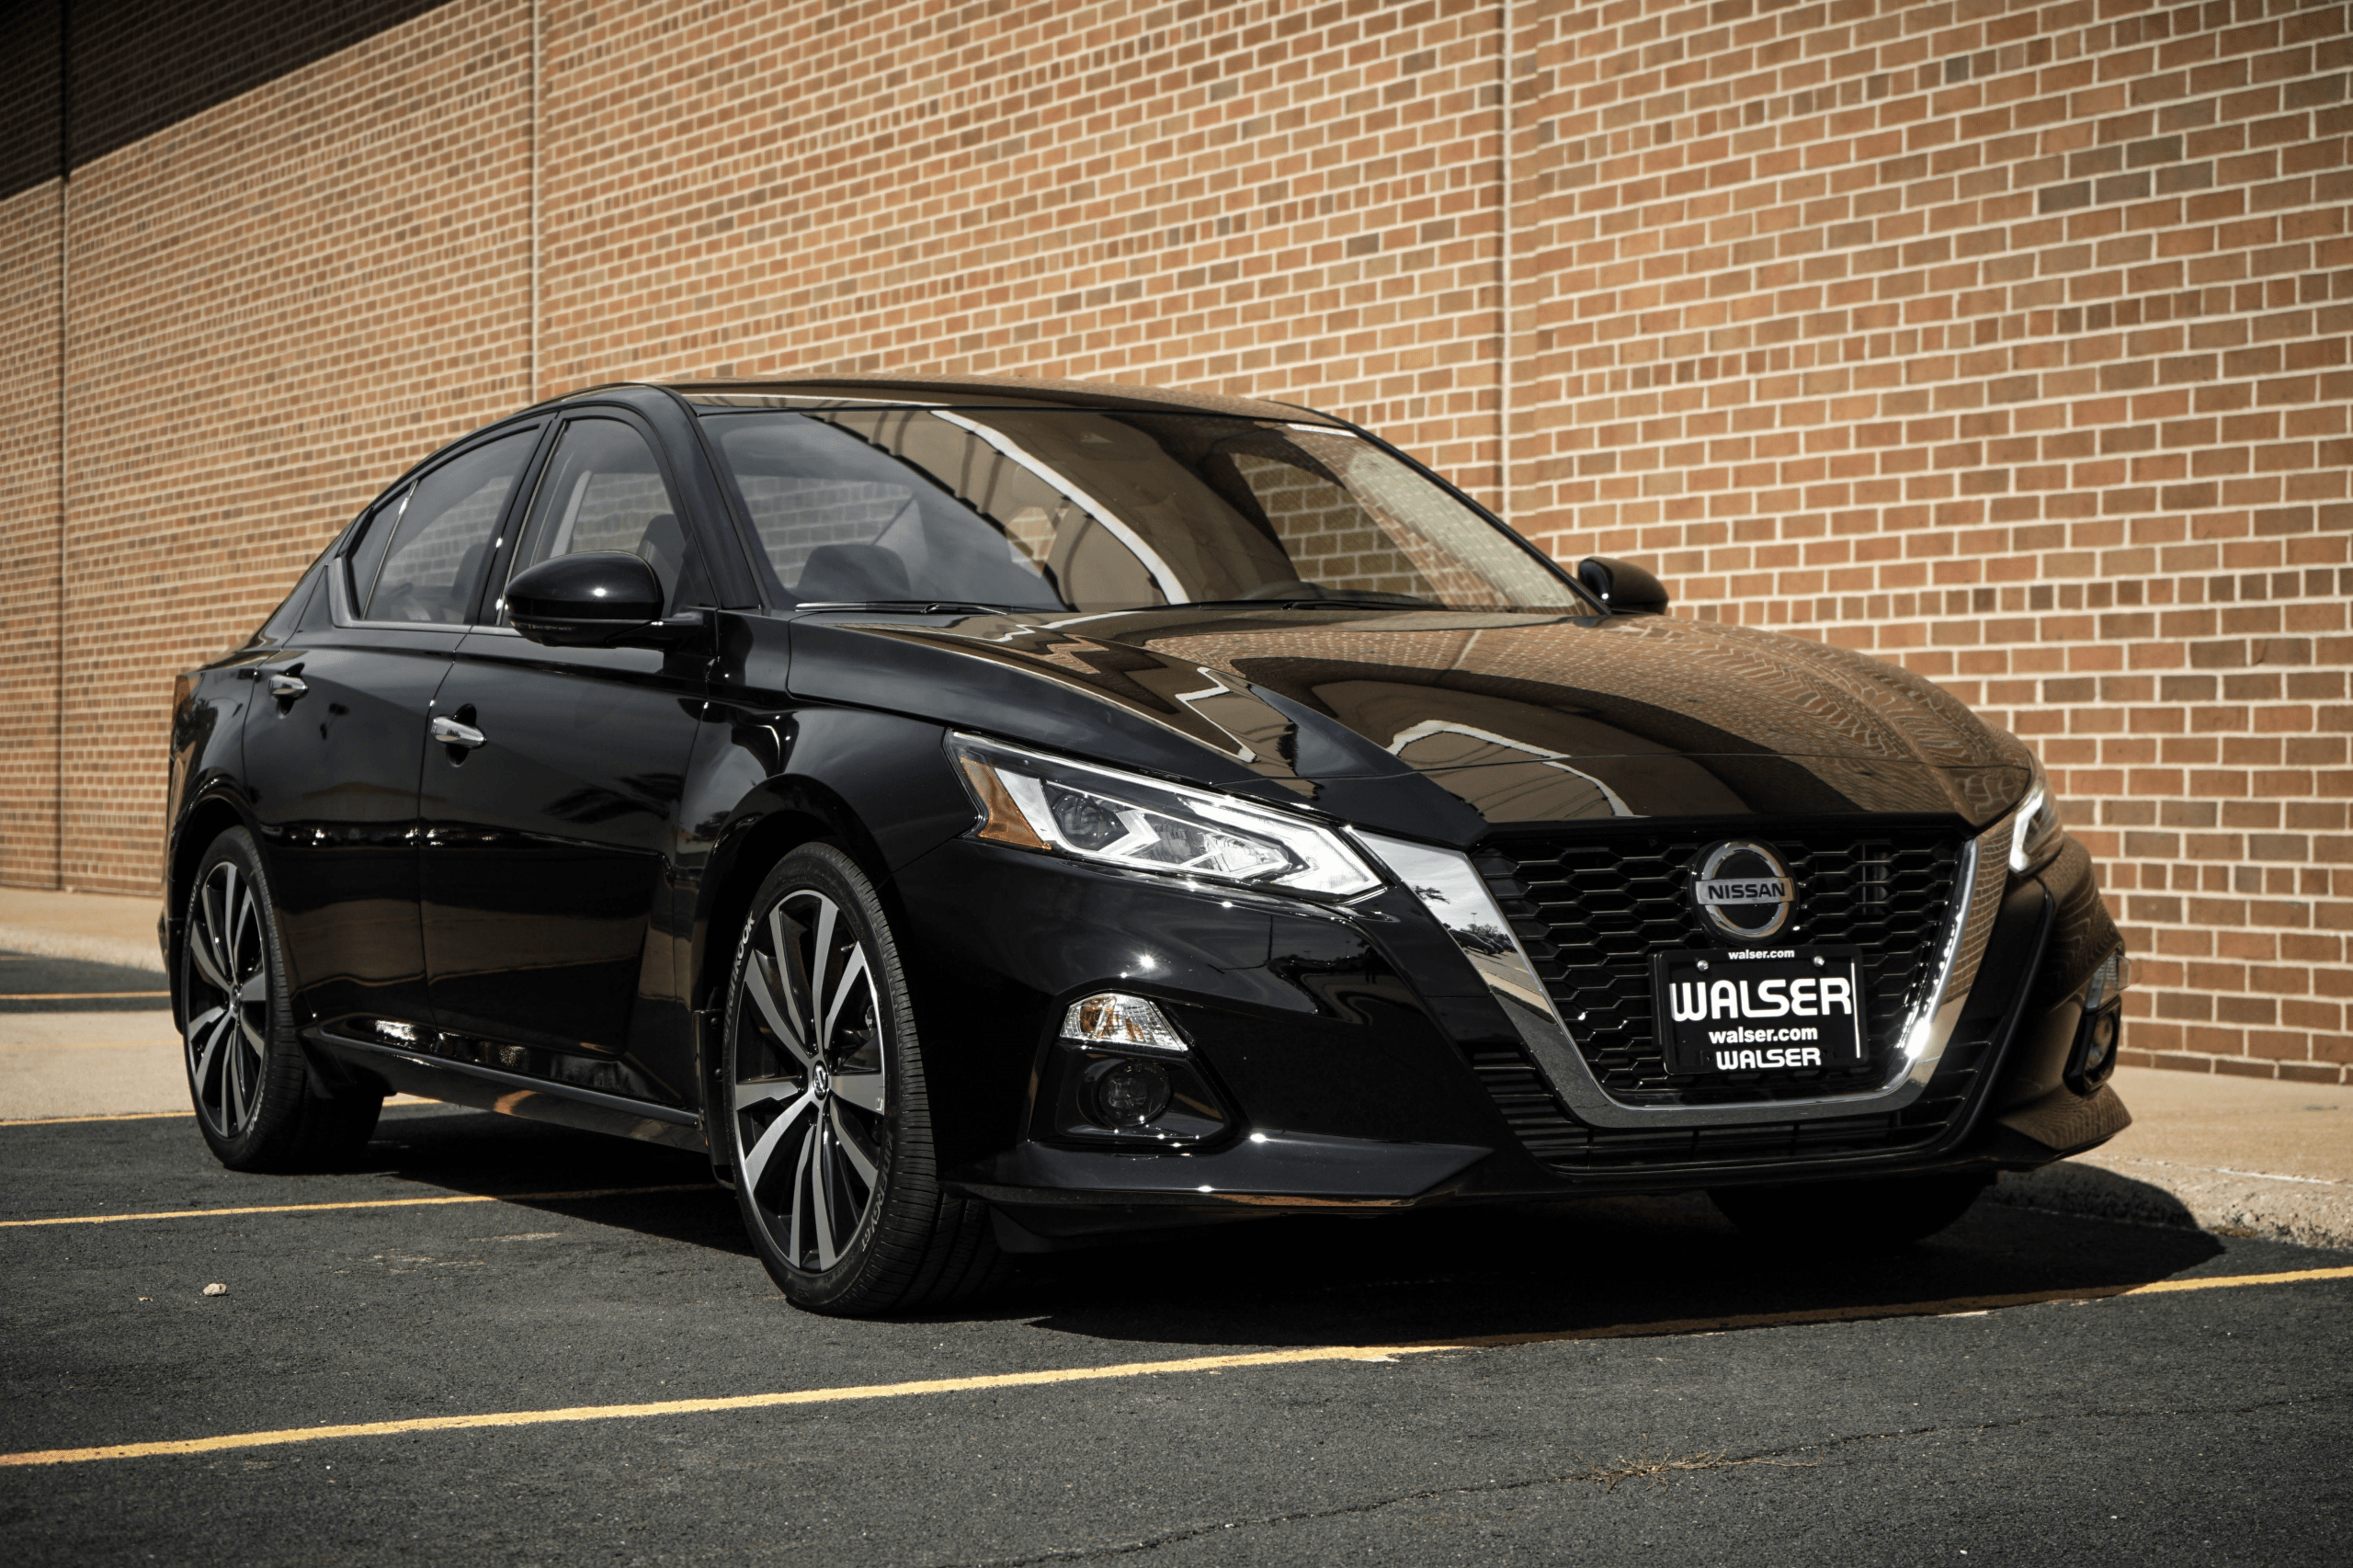 2021 Nissan Altima Coupe Price And Release Date In 2020 Nissan Altima Coupe Nissan Altima Altima